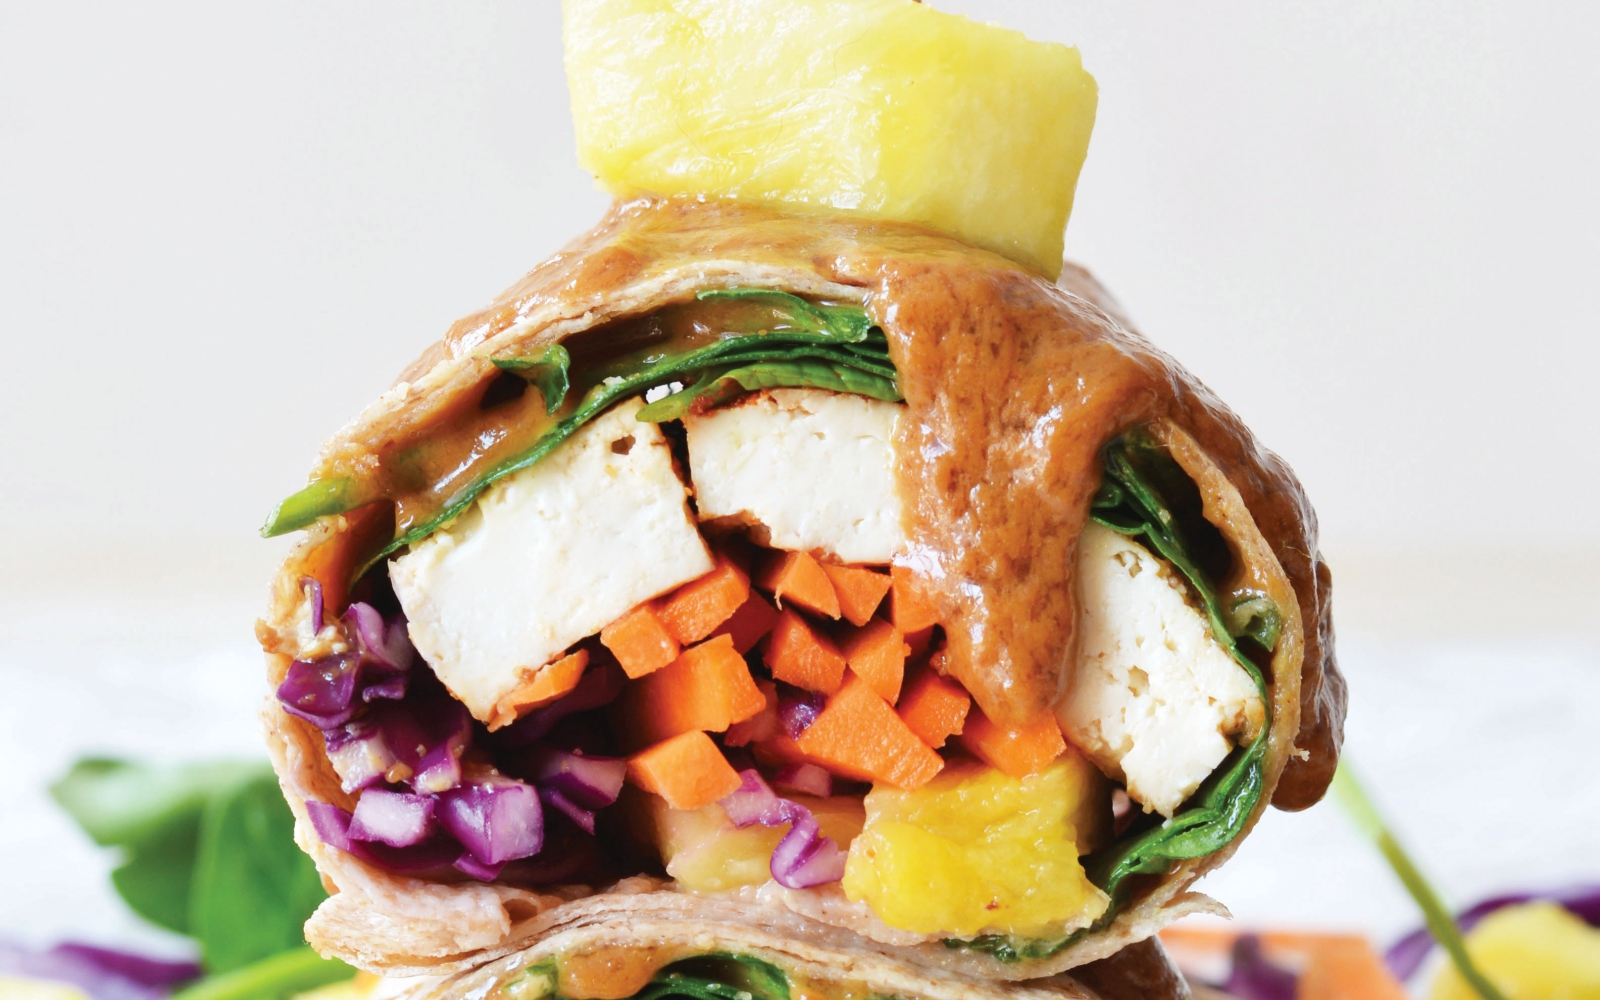 Pineapple and Peanut Sauce Tofu Wrap